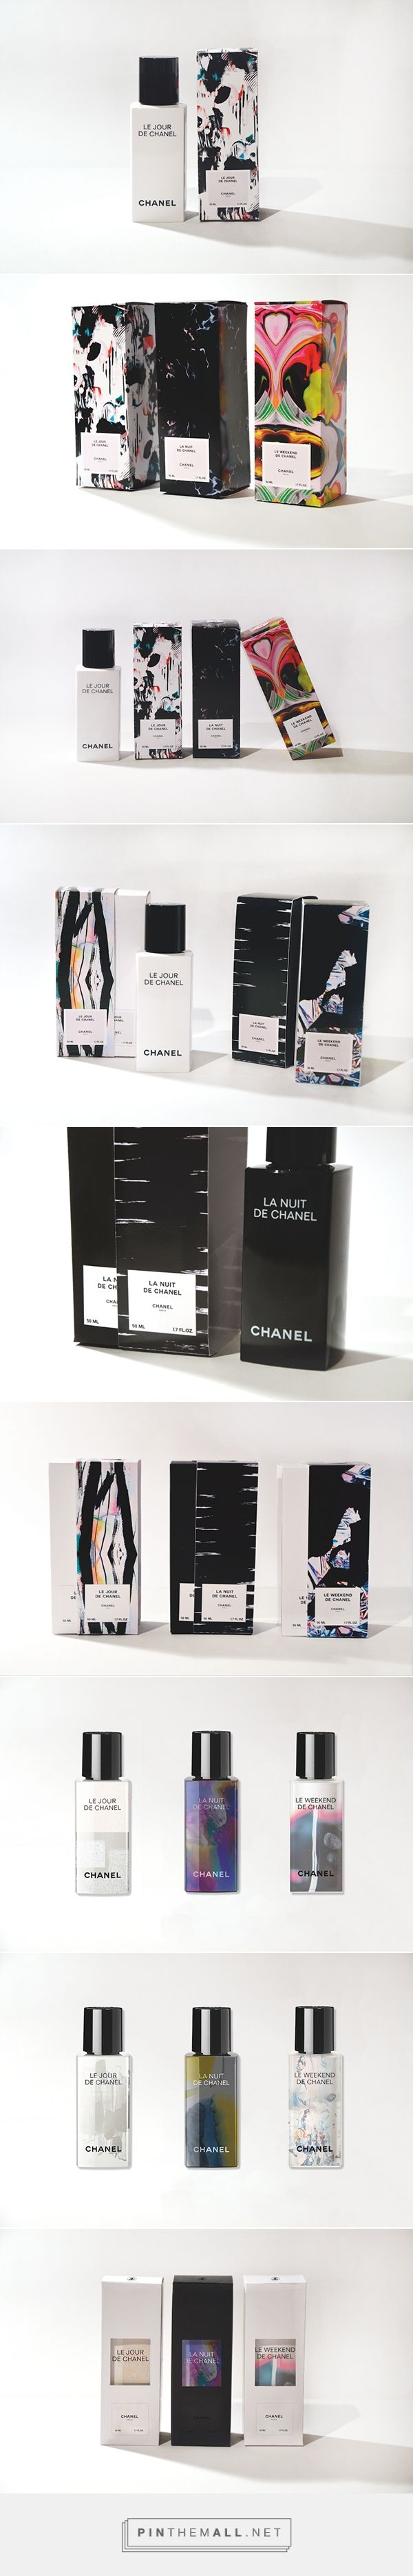 1063 Best Lovely Package Images On Pinterest Packaging Design Pop Ice Paket Bundle Pack Chanel Behance Curated By Diva Pd Creating Limited Edition In